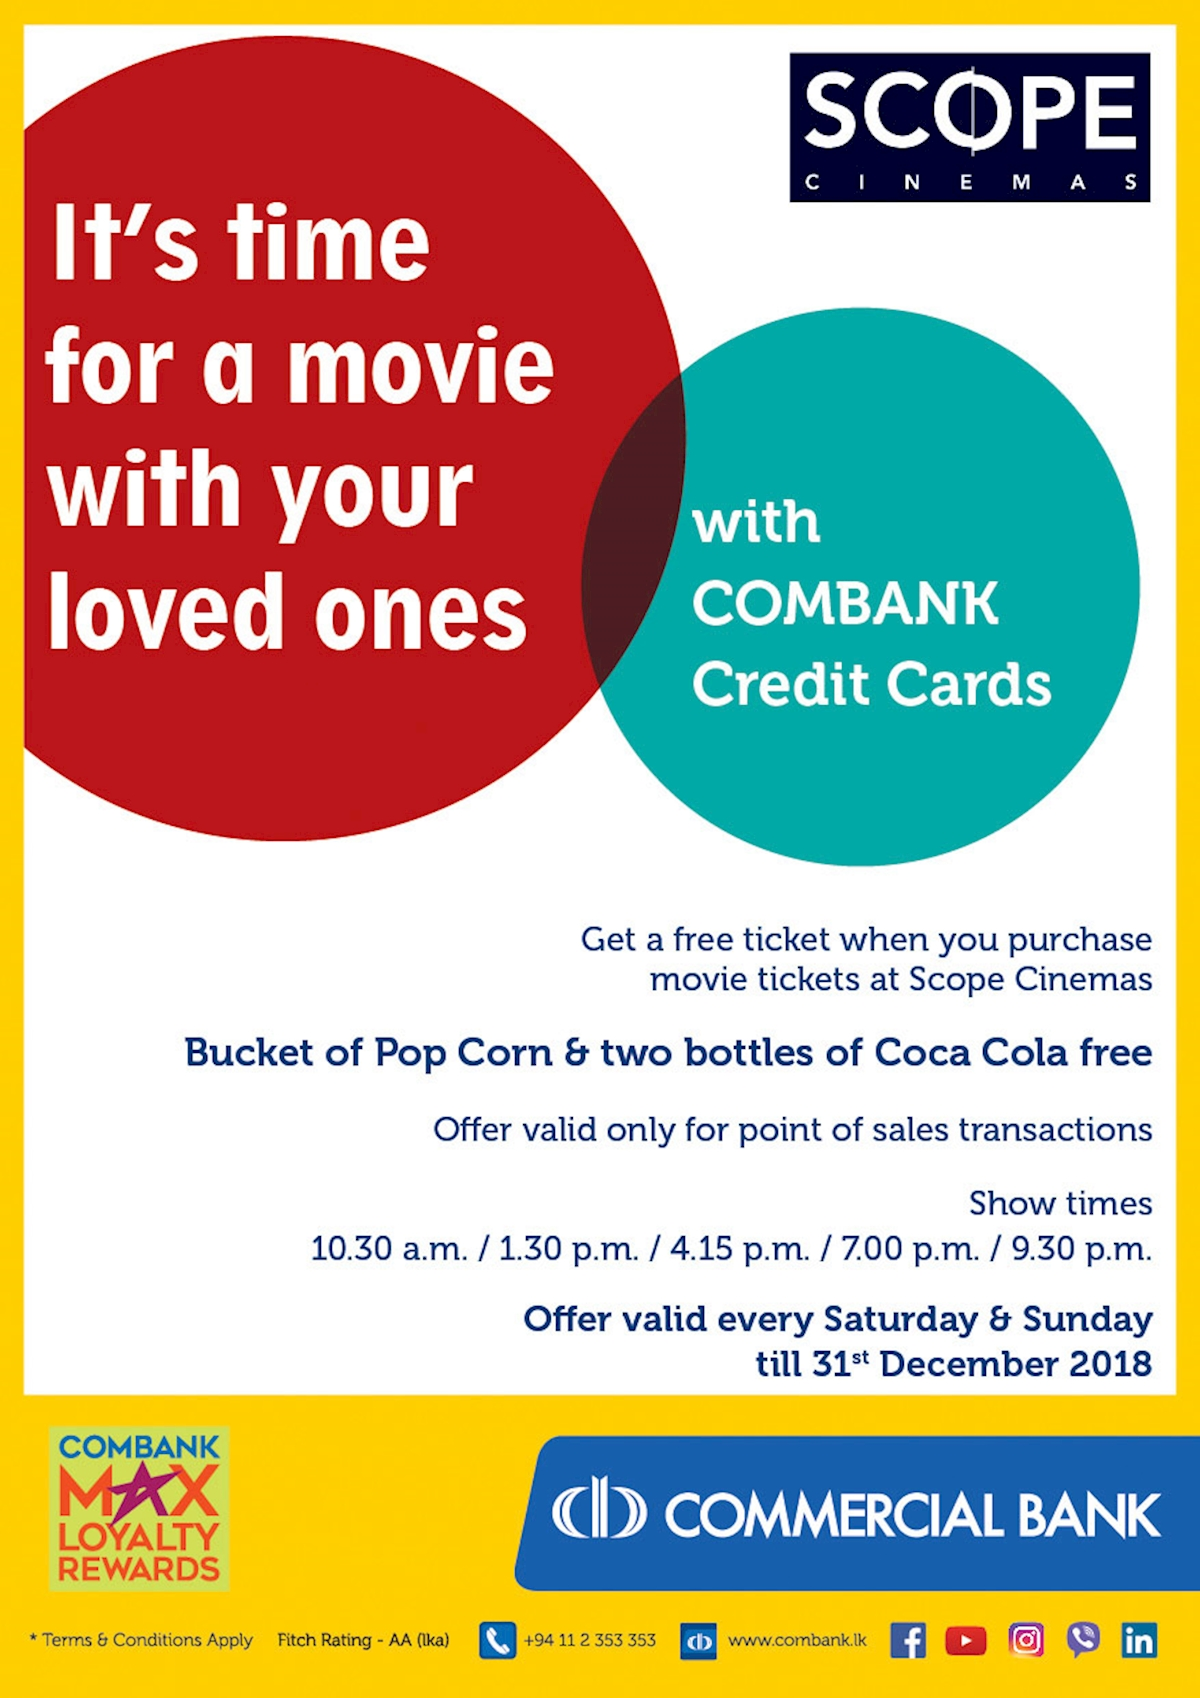 Get a Free ticket when you purchase movie tickets at Scope Cinemas for Combank Cardholders